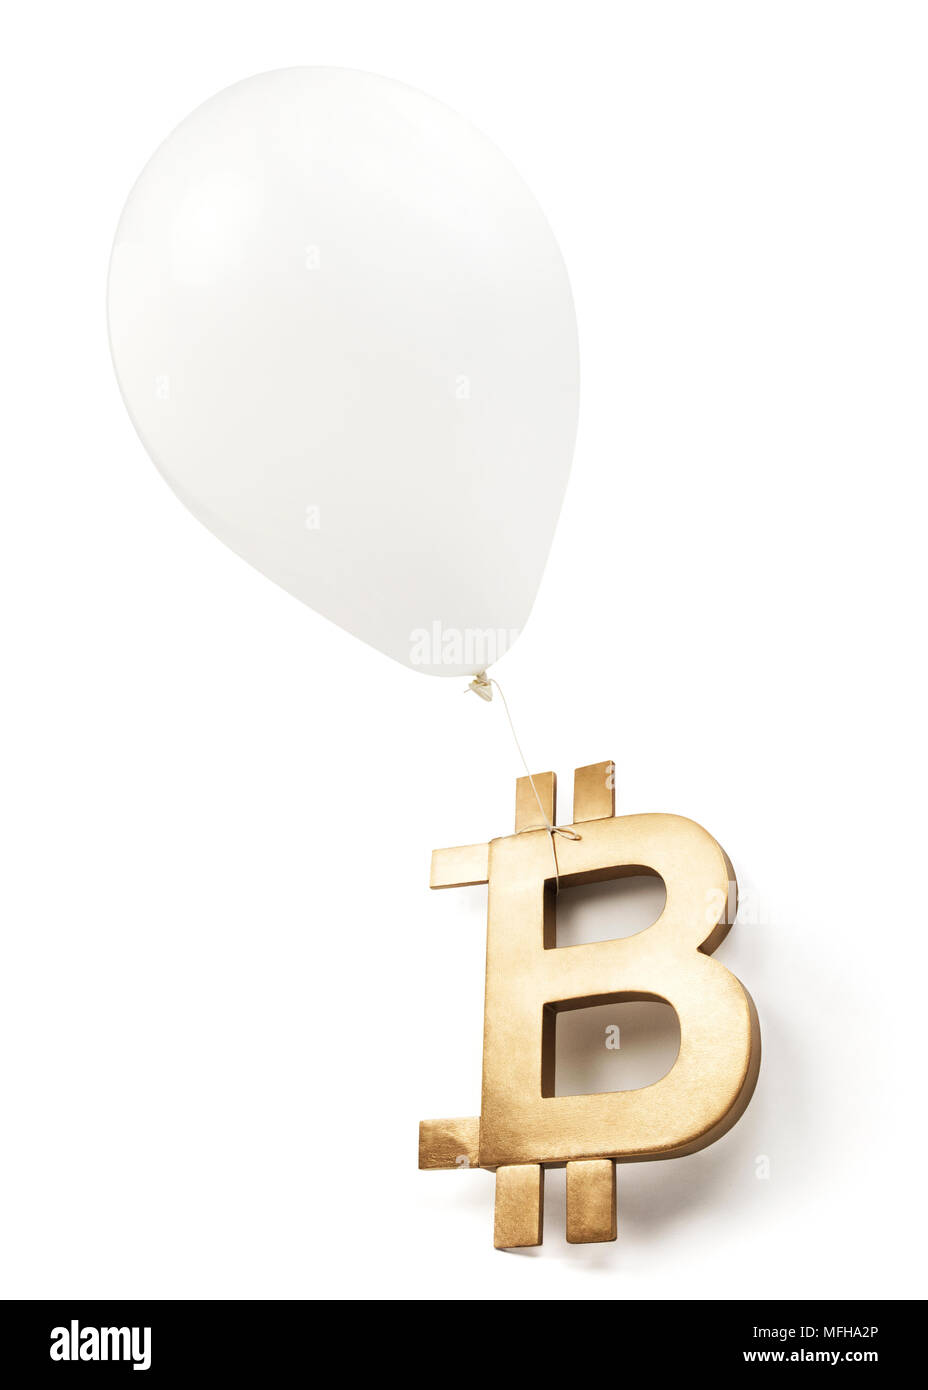 Bitcoin Bubble — Isolated bitcoin symbol with white balloon. - Stock Image